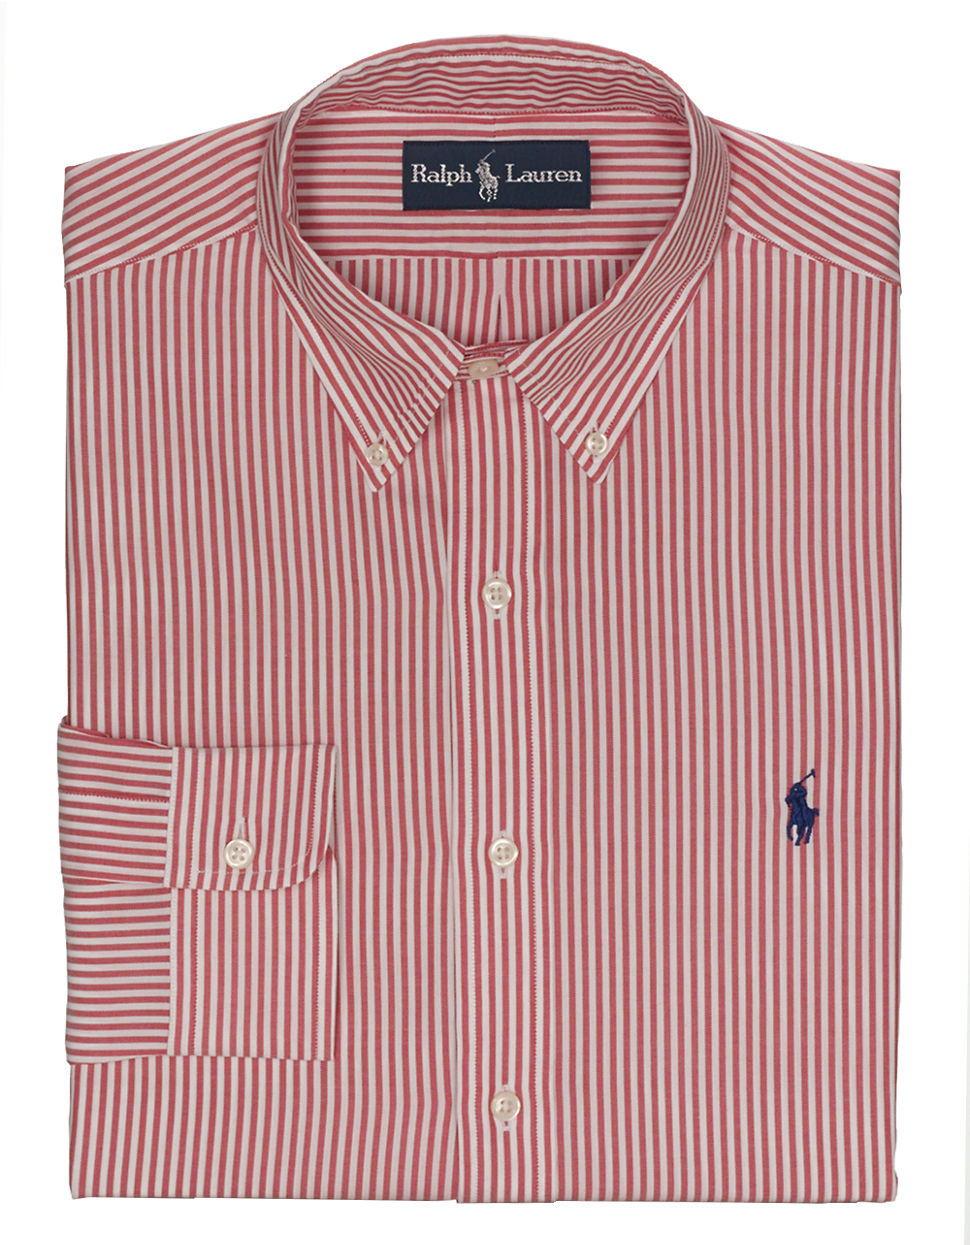 Polo ralph lauren regular fit striped oxford button down for Mens red and white striped dress shirt